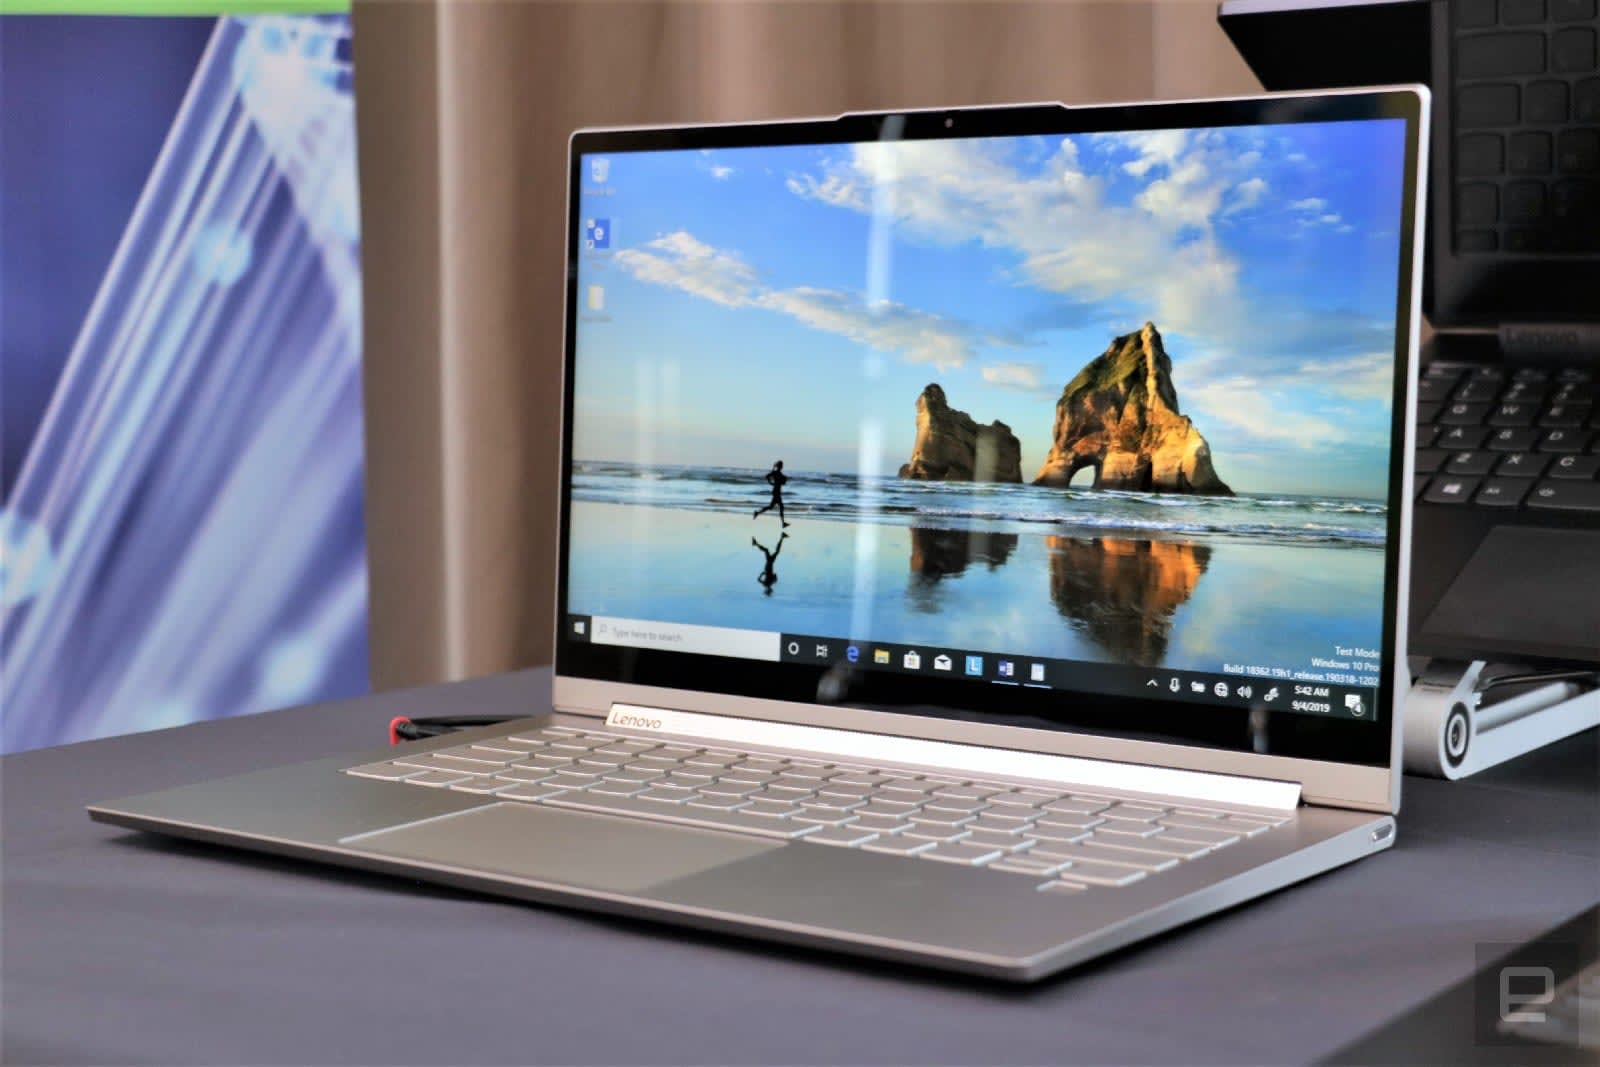 Lenovo's Yoga laptops get the 10th-gen Intel treatment and